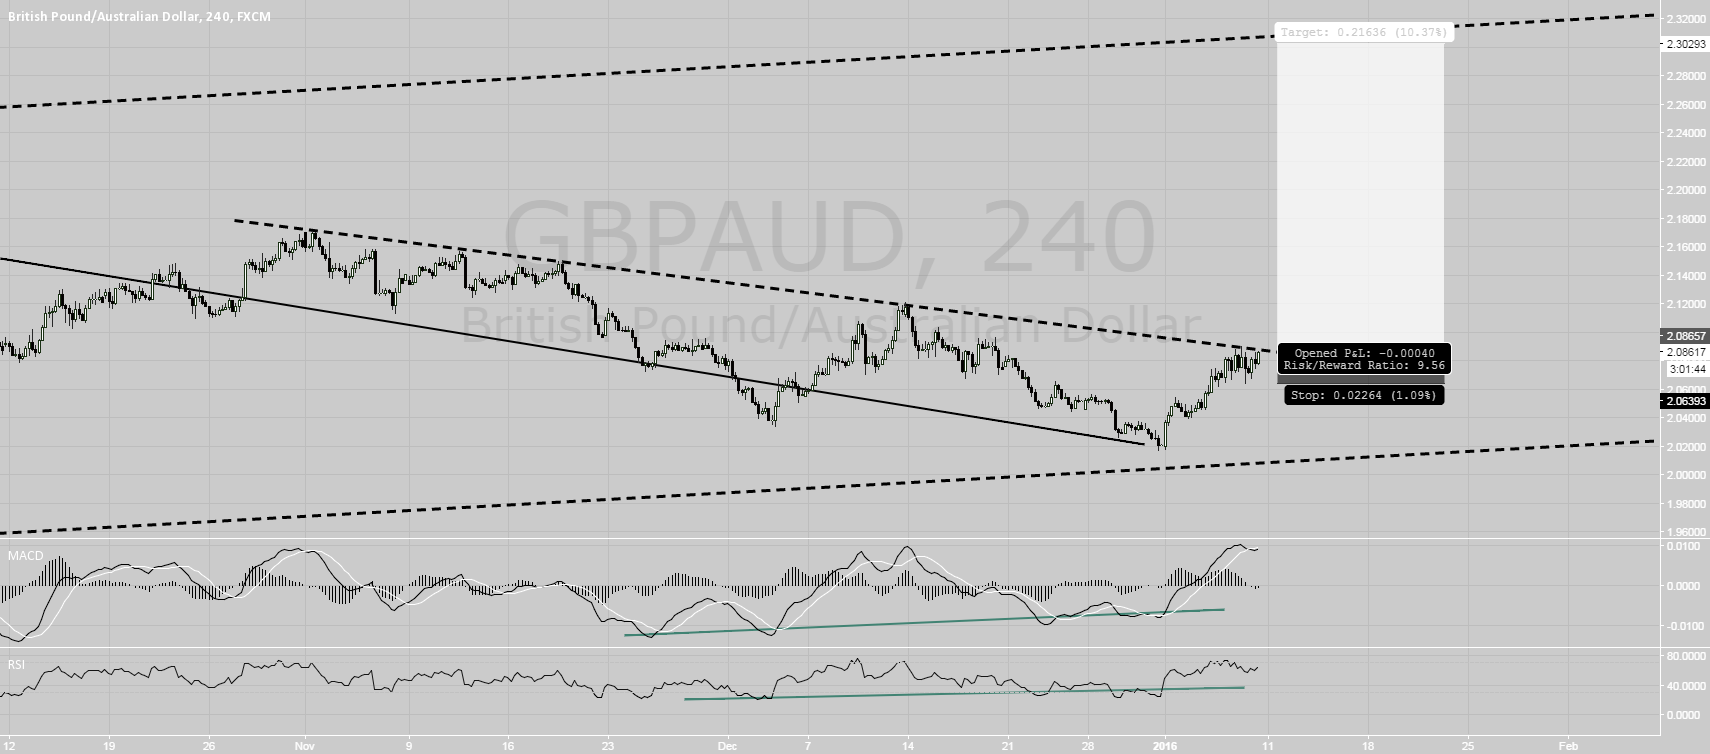 another BIG move up in gbpaud? - Long